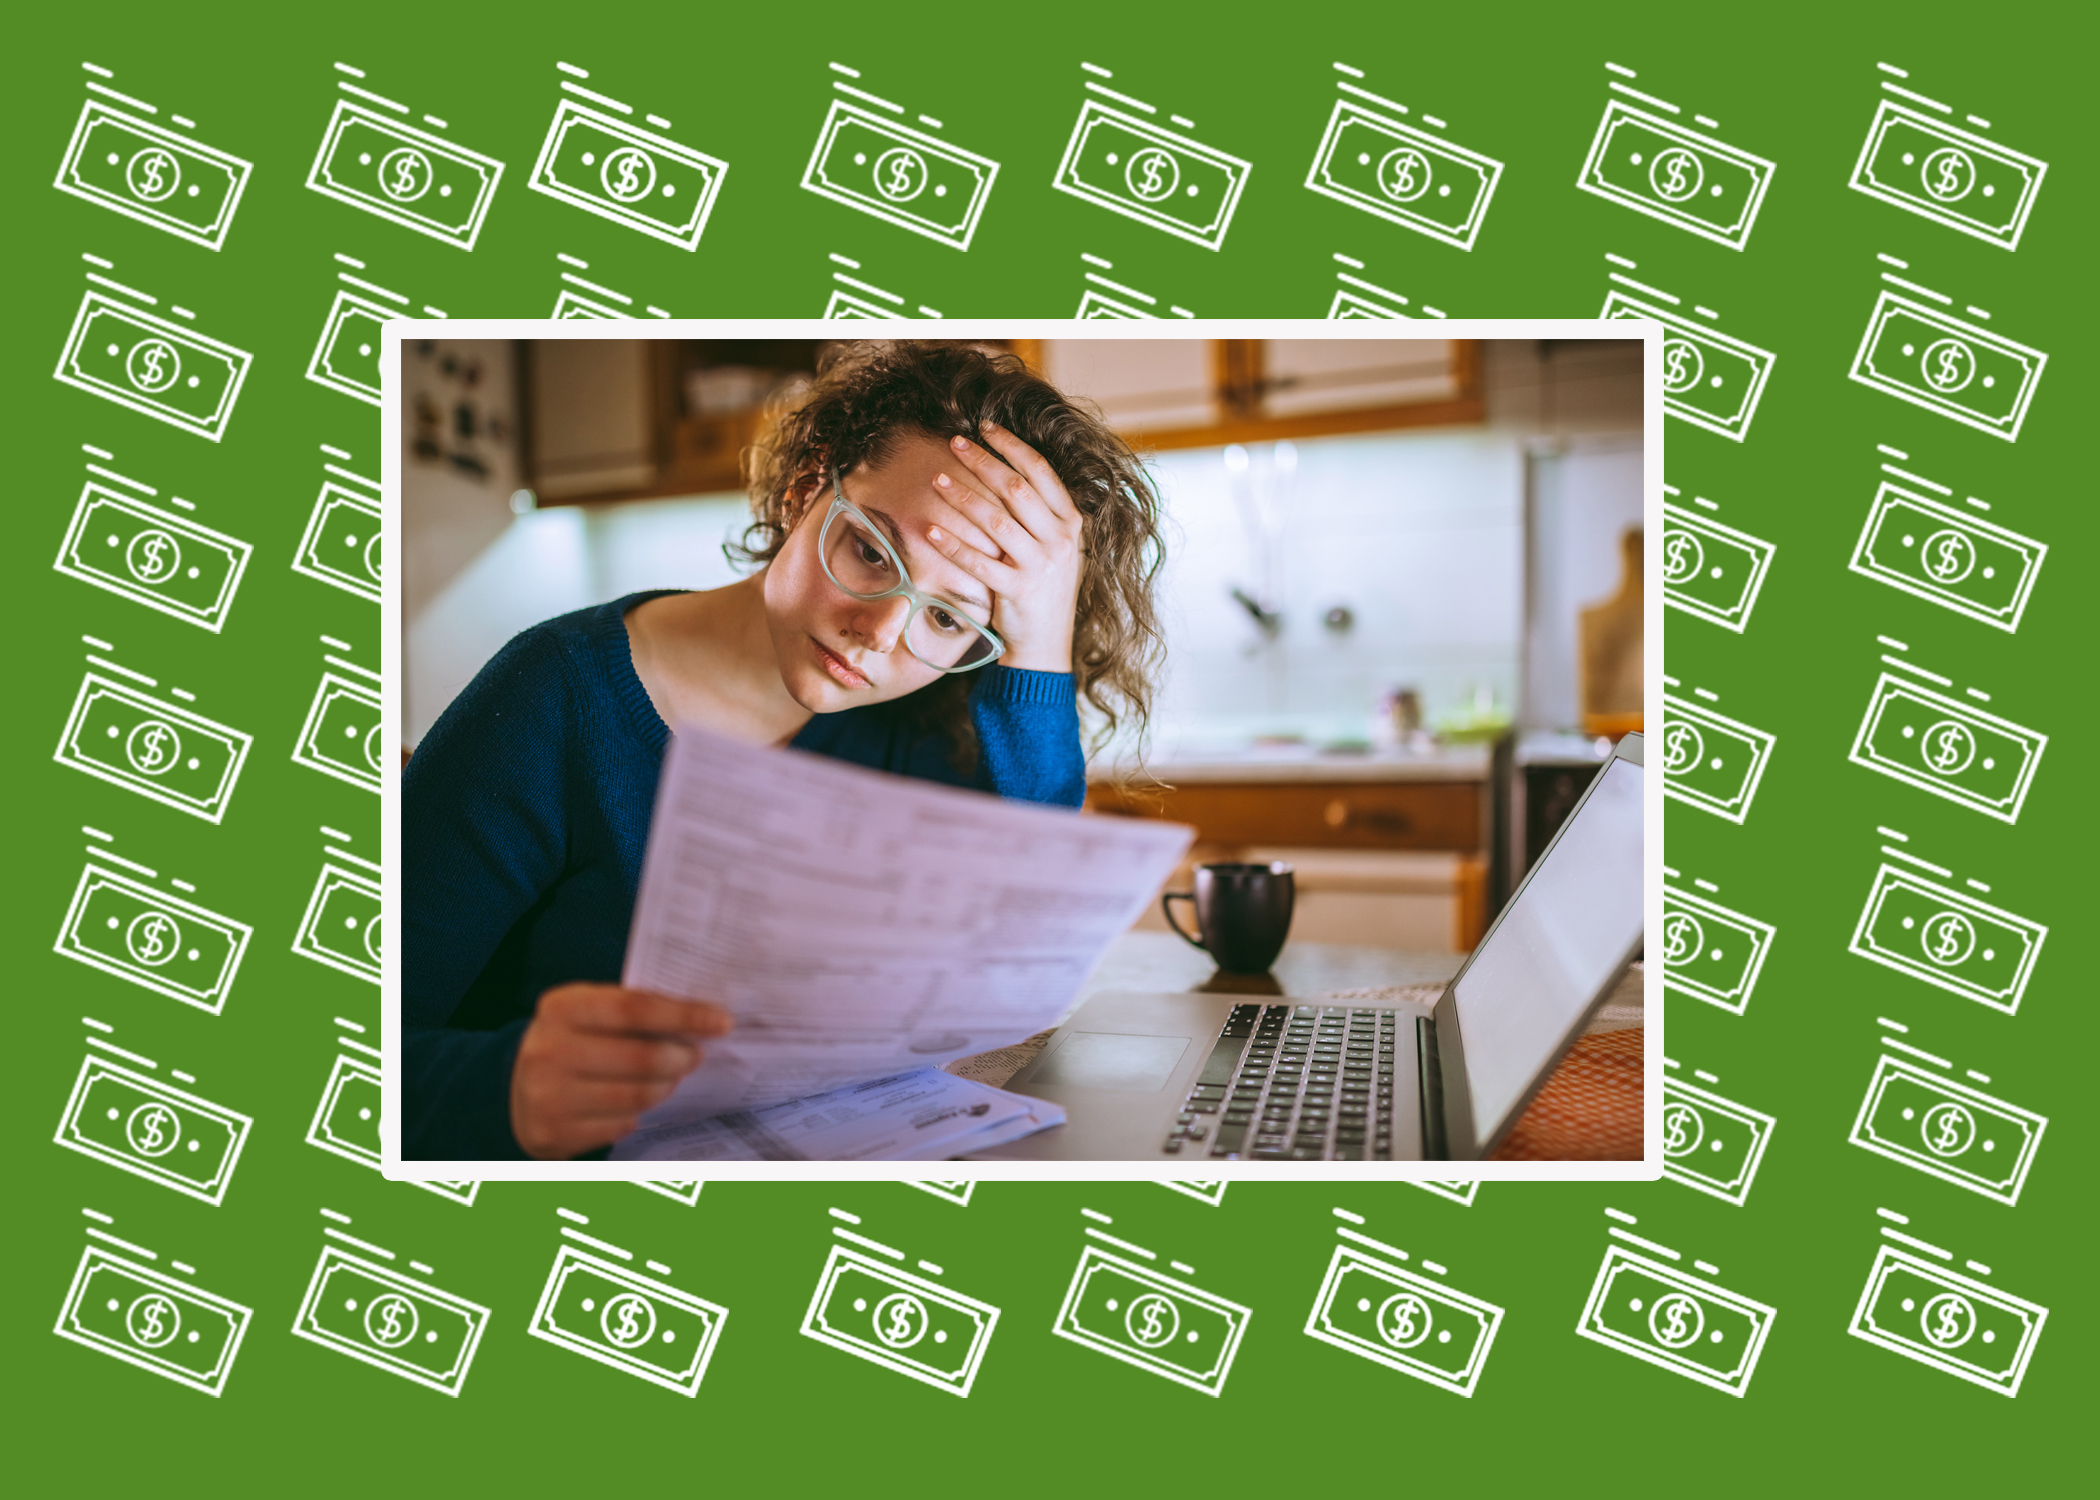 Overwhelmed by financial anxiety? Here's how to set tangible goals in 2019